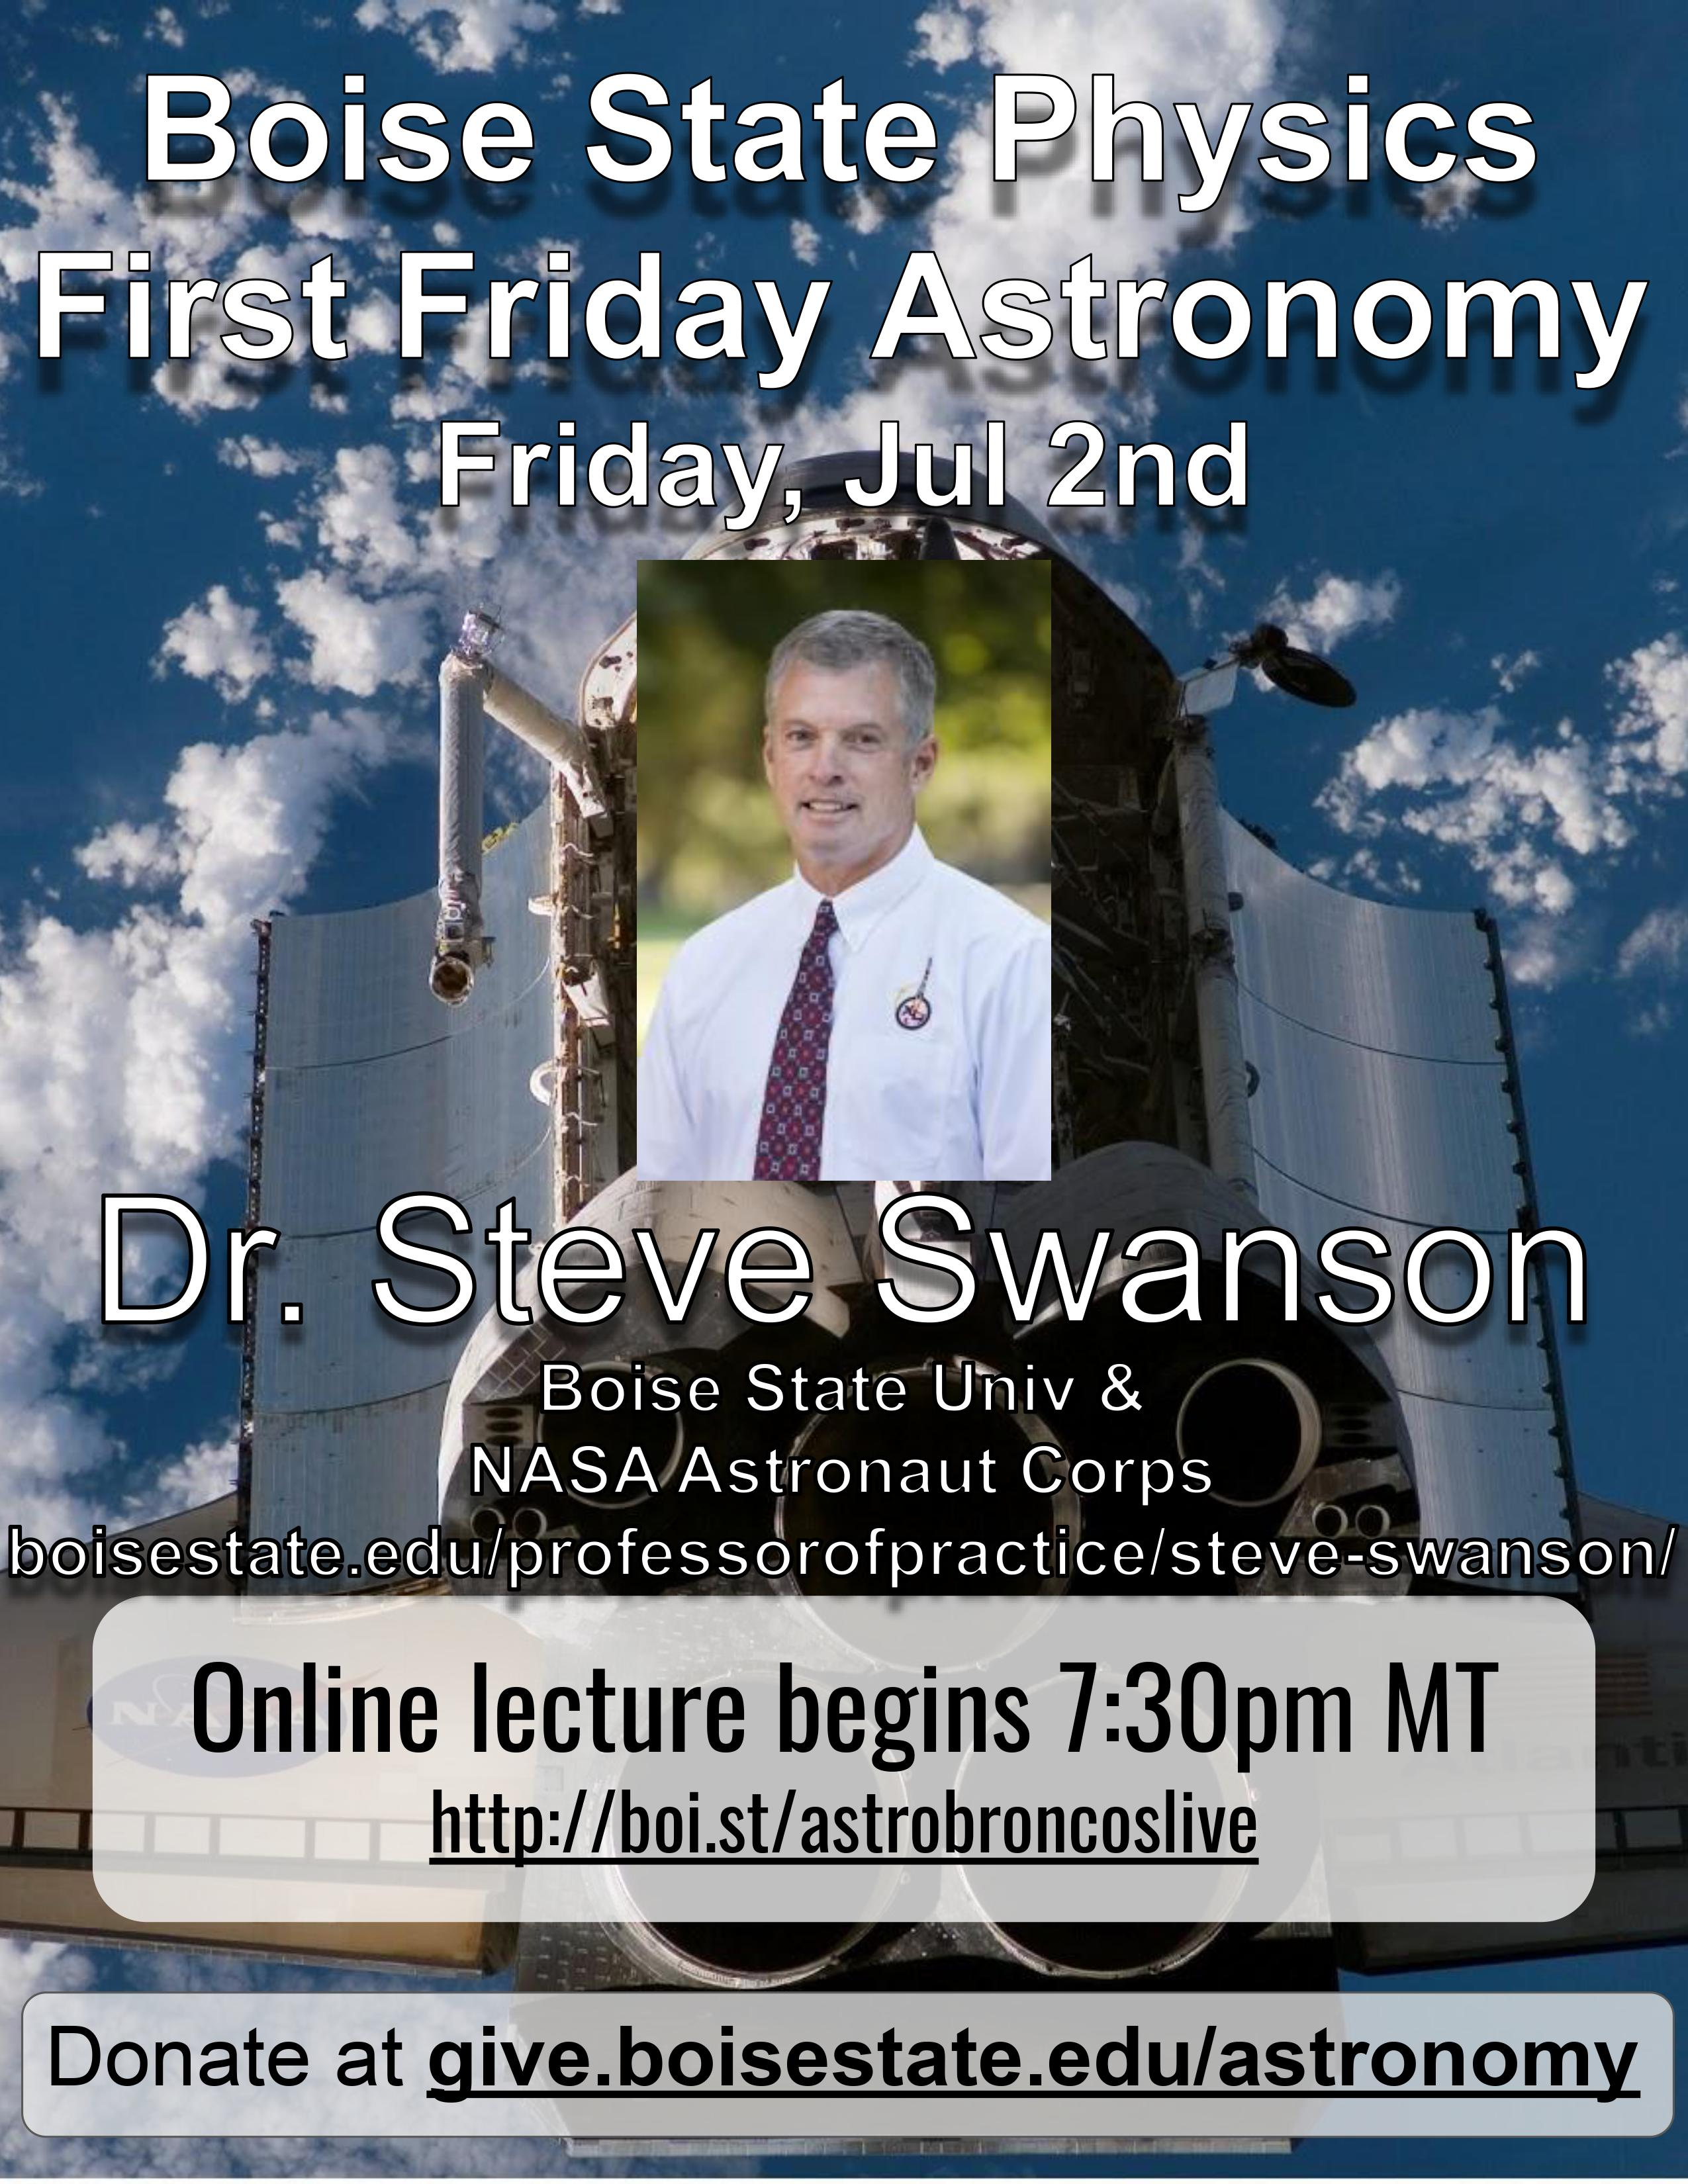 Flyer for First Friday Astronomy Event